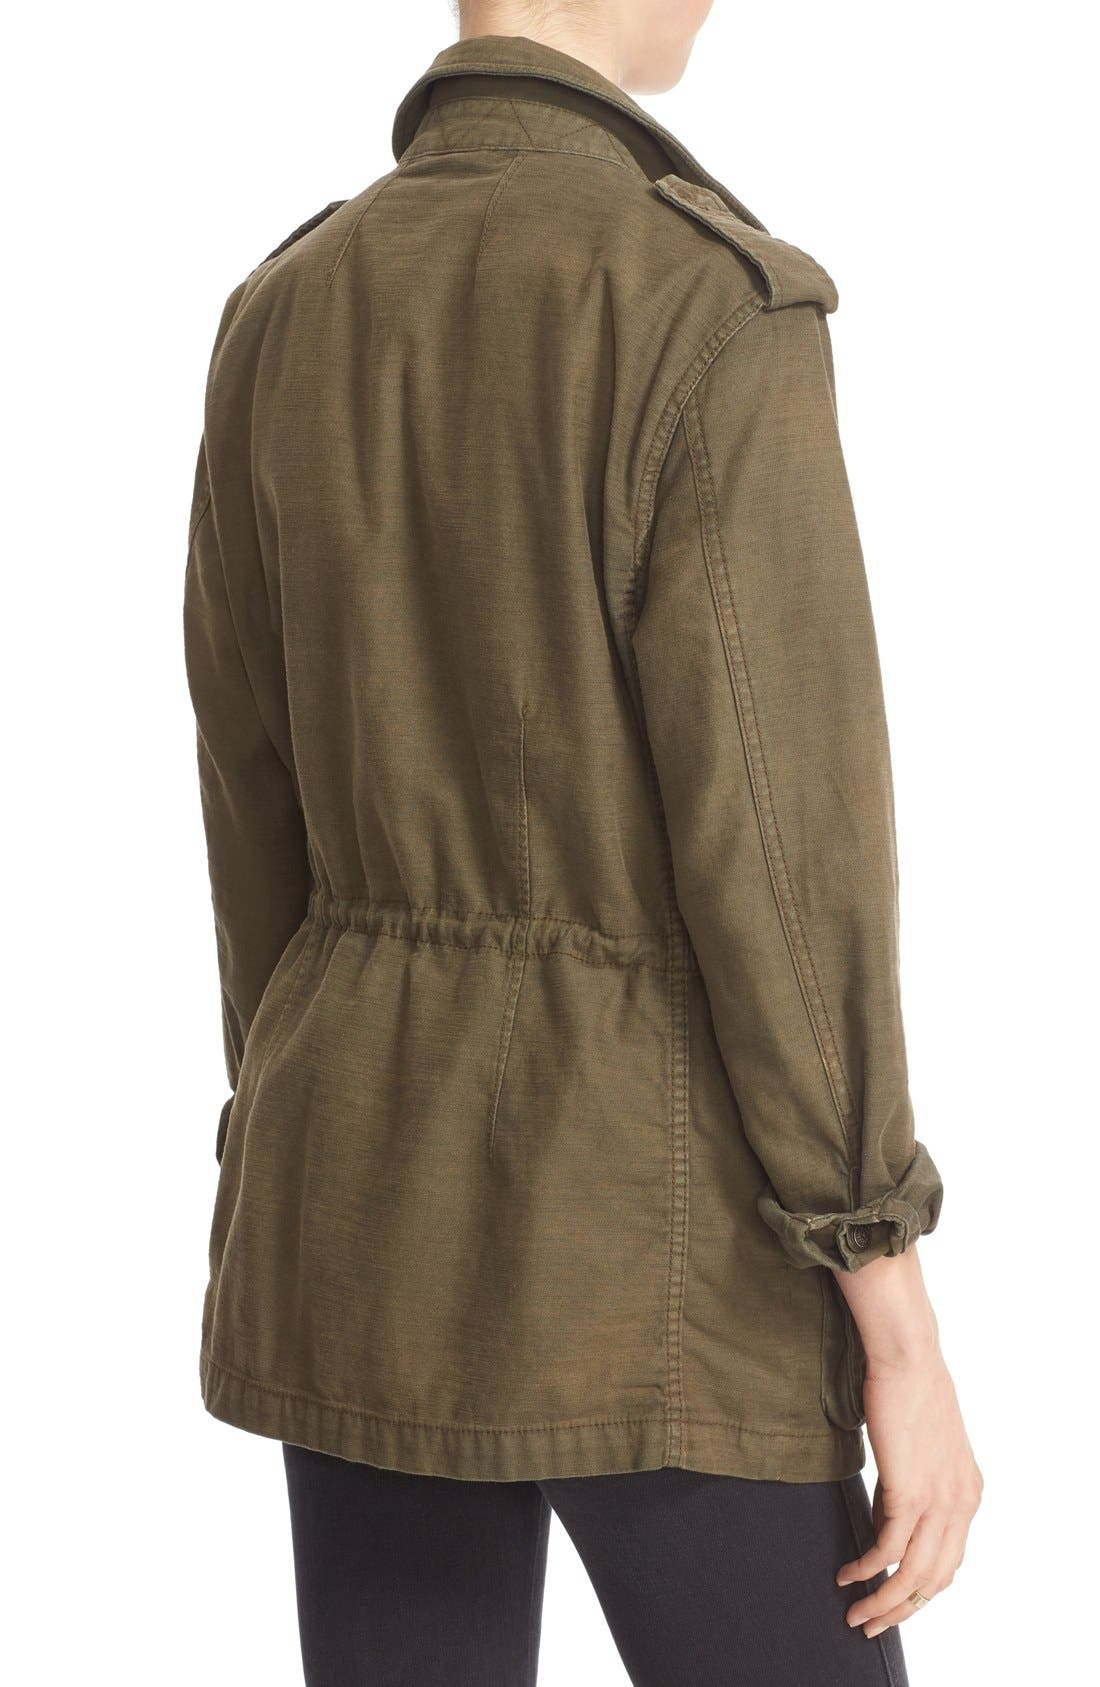 FREE PEOPLE, 'Not Your Brother's' Utility Jacket, Alternate thumbnail 6, color, 400